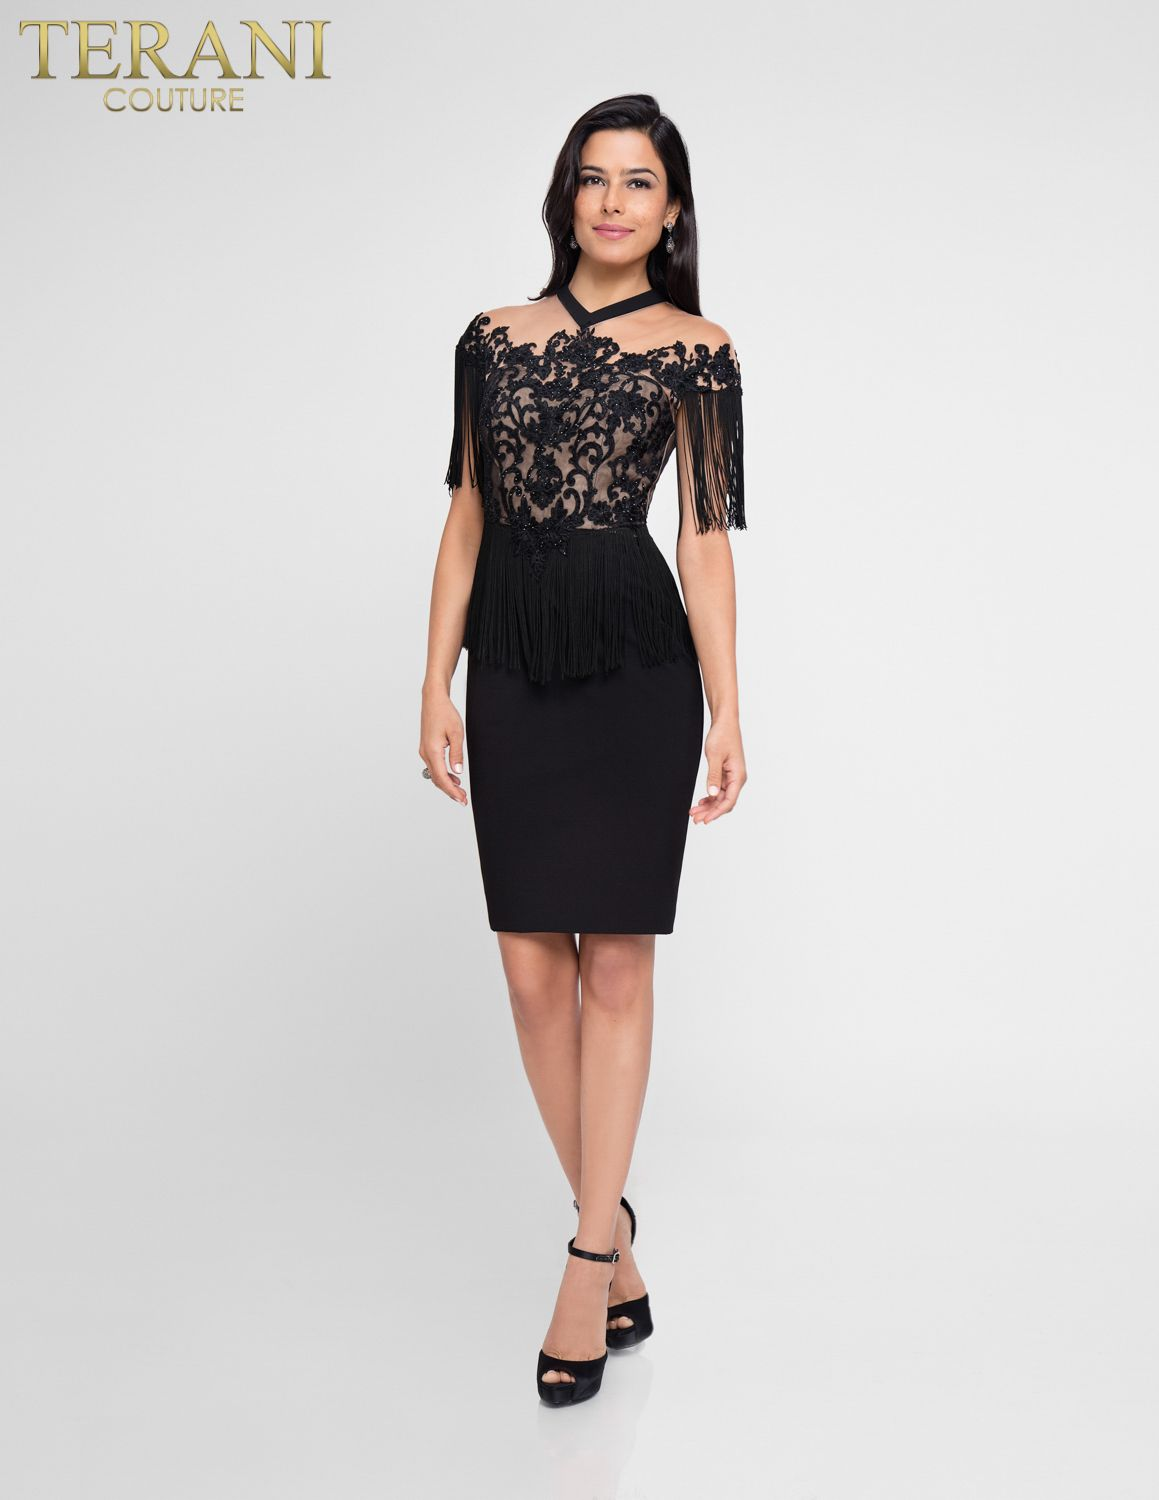 Form Flattering Tail Dress With Beaded Embroidery And Fringe Detail